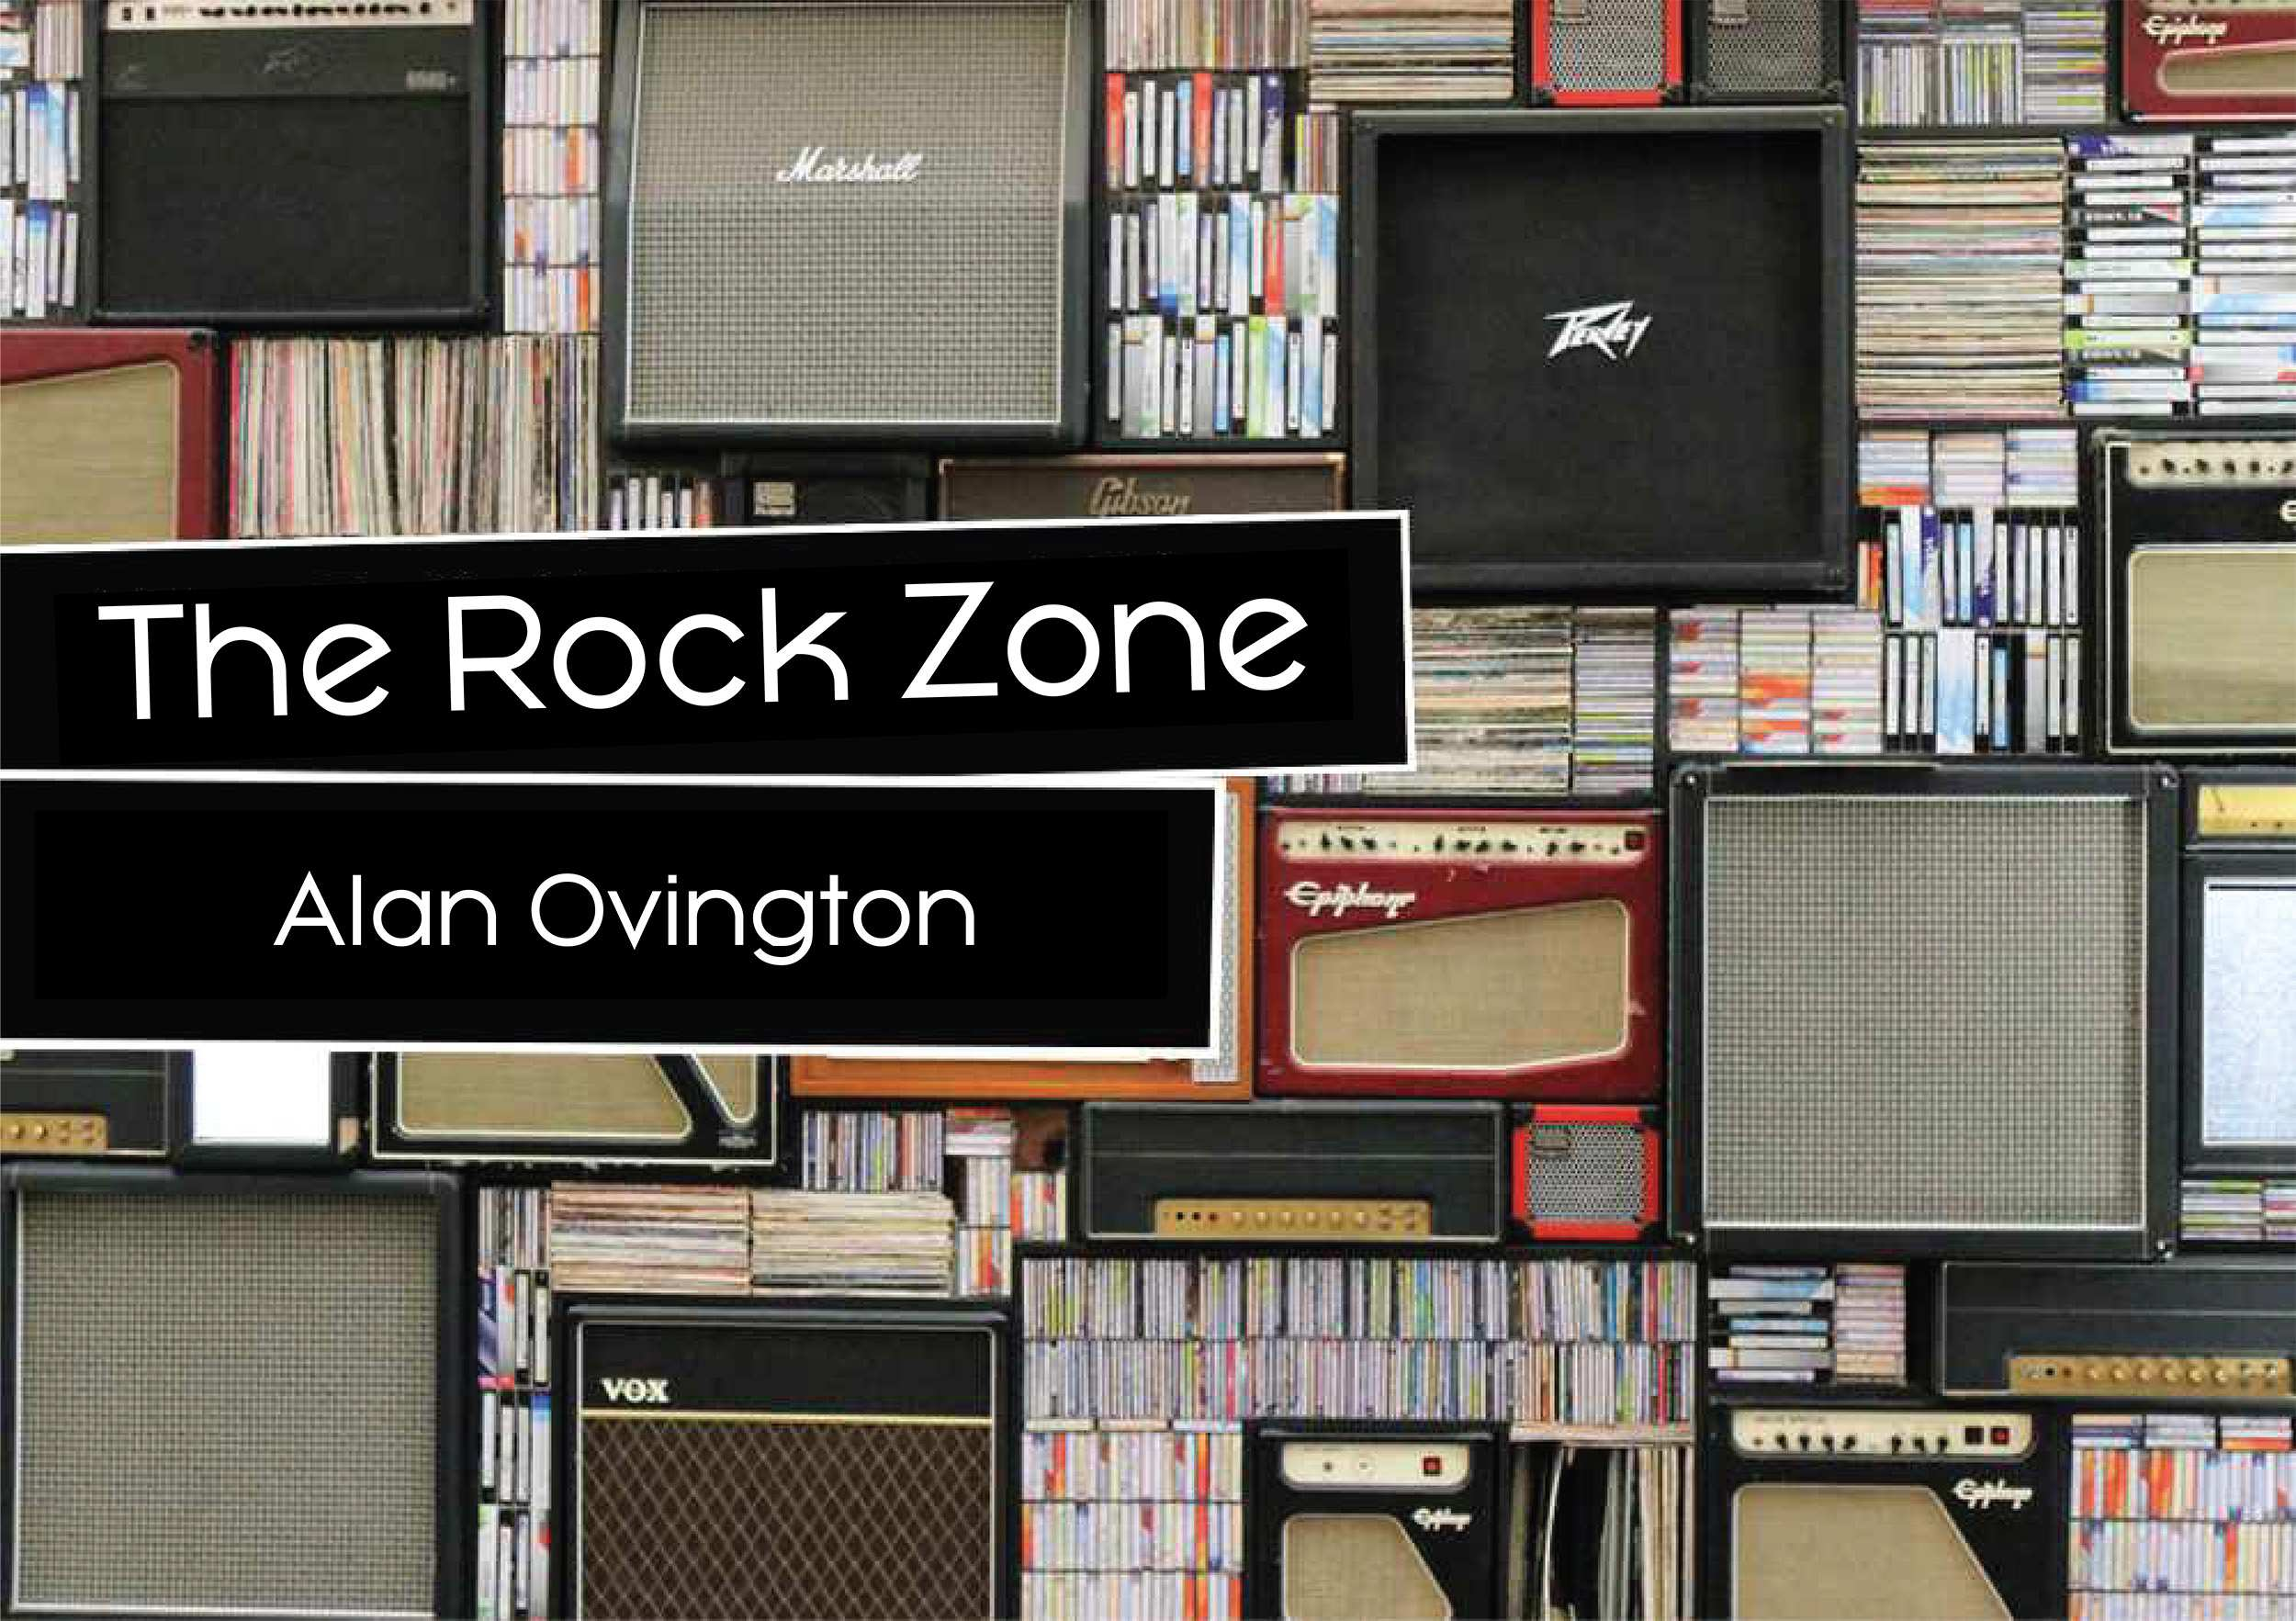 The Rock Zone